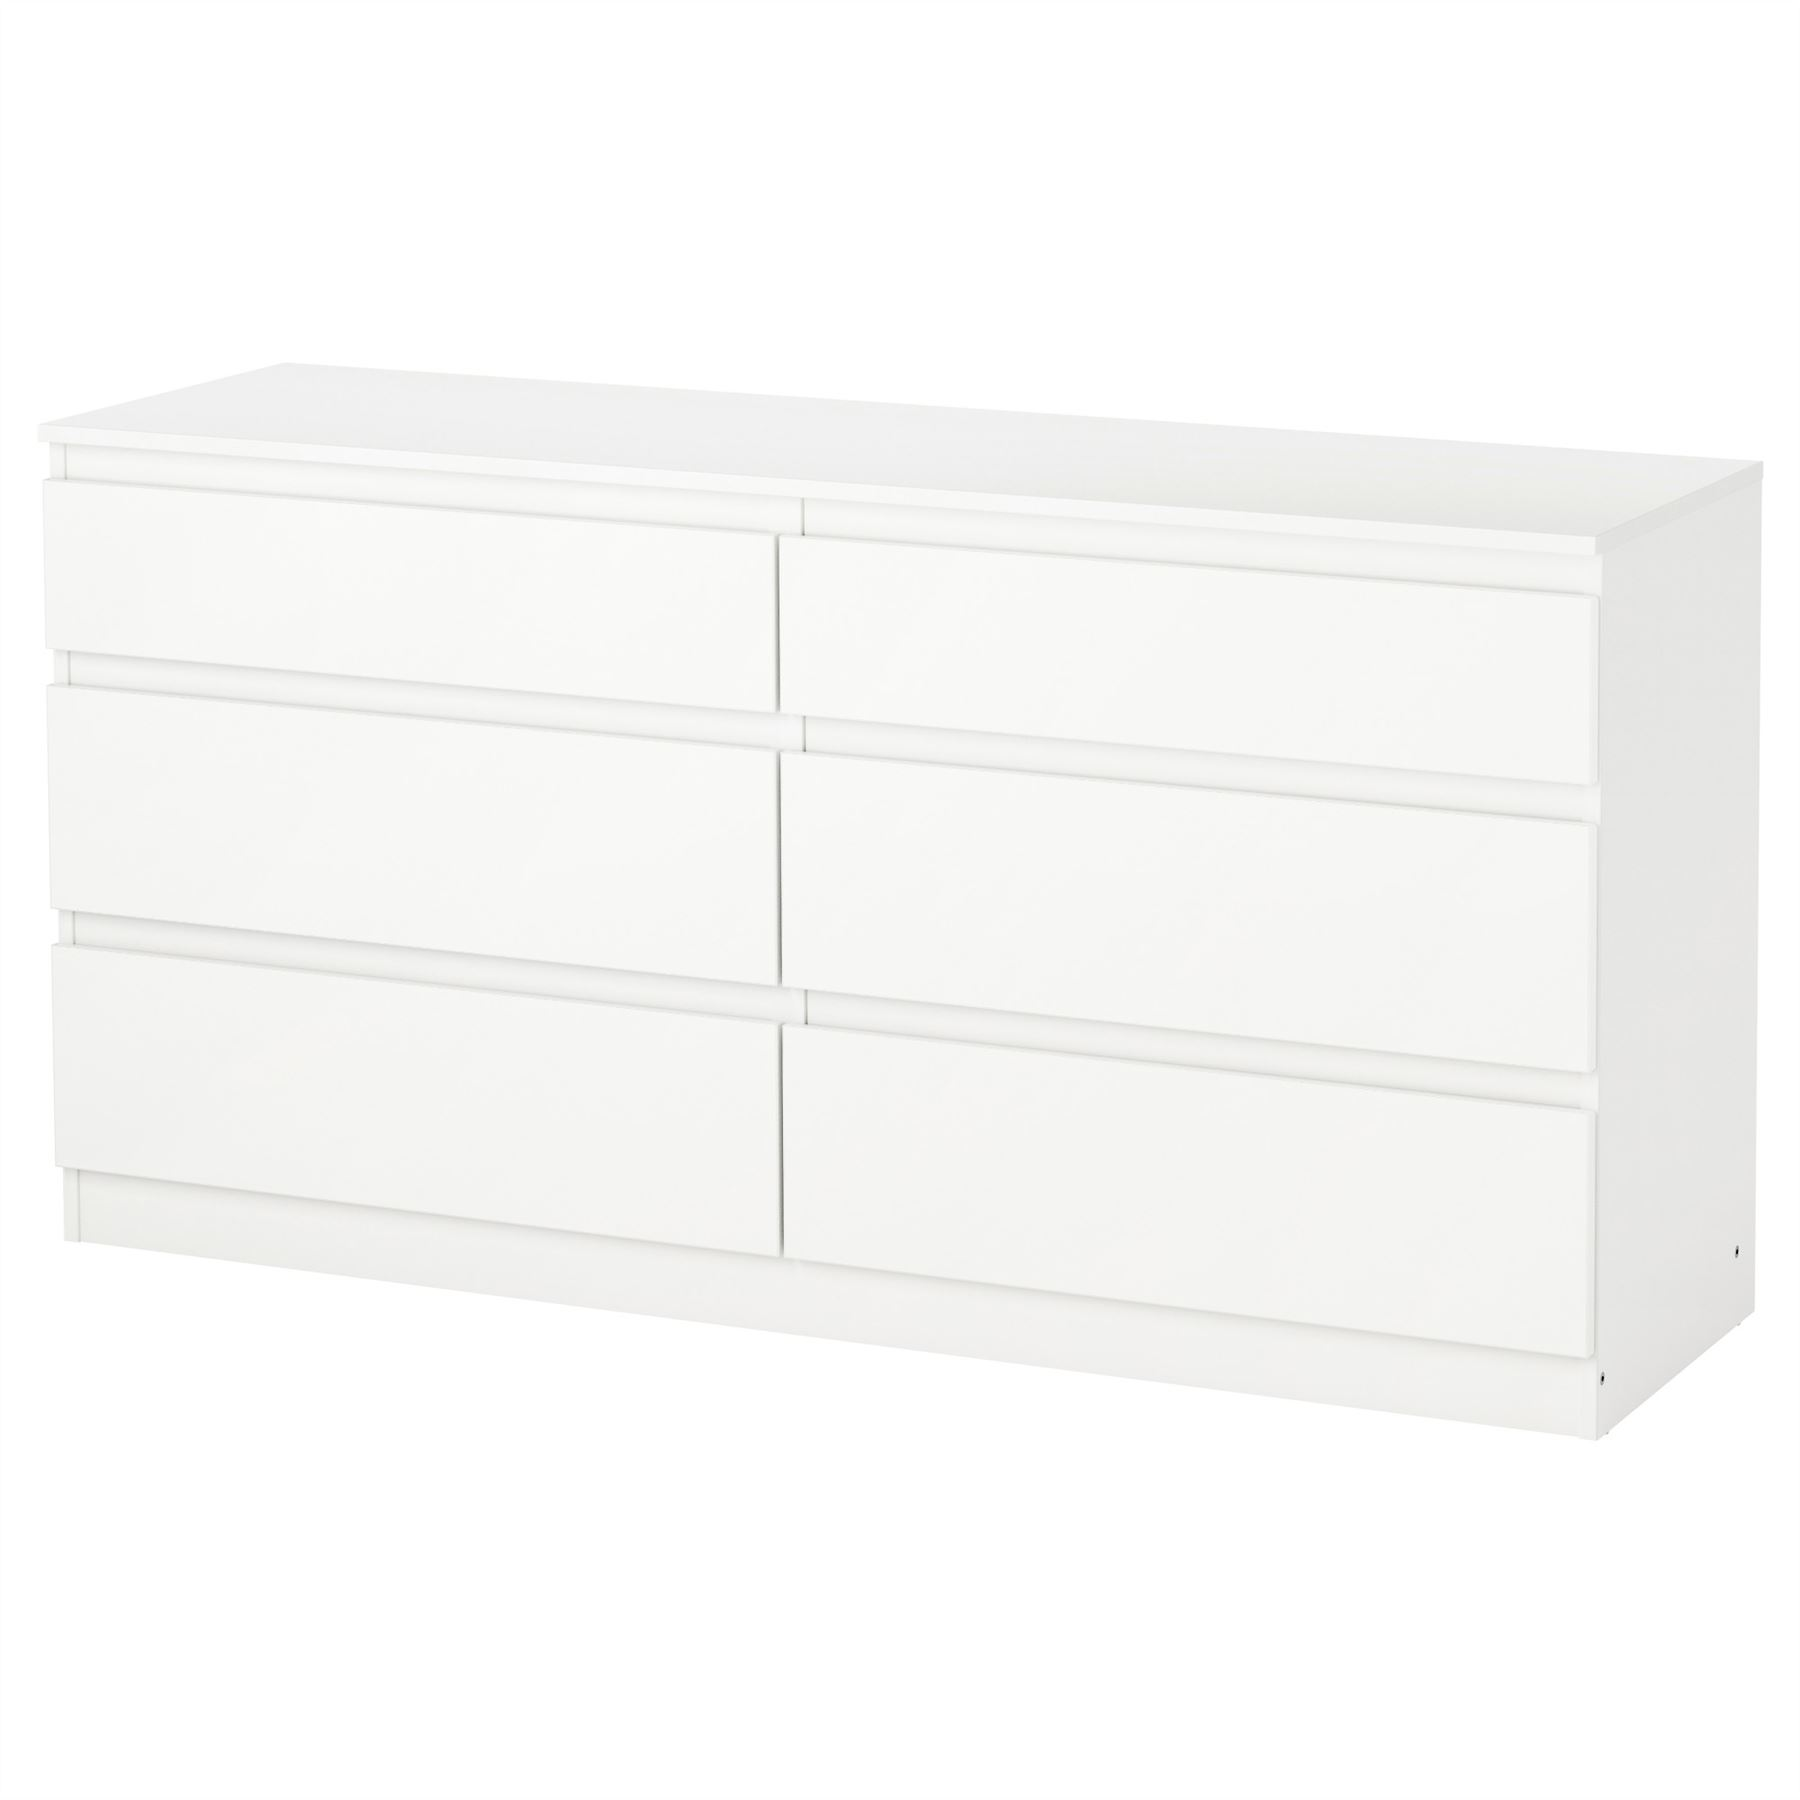 Receipt For Rent Ikea Kullen Chest Of  Drawers White Bedroom Furniture New Receipt Tracker with Difference Between Invoice And Proforma Invoice  Invoice Template For Freelance Work Word